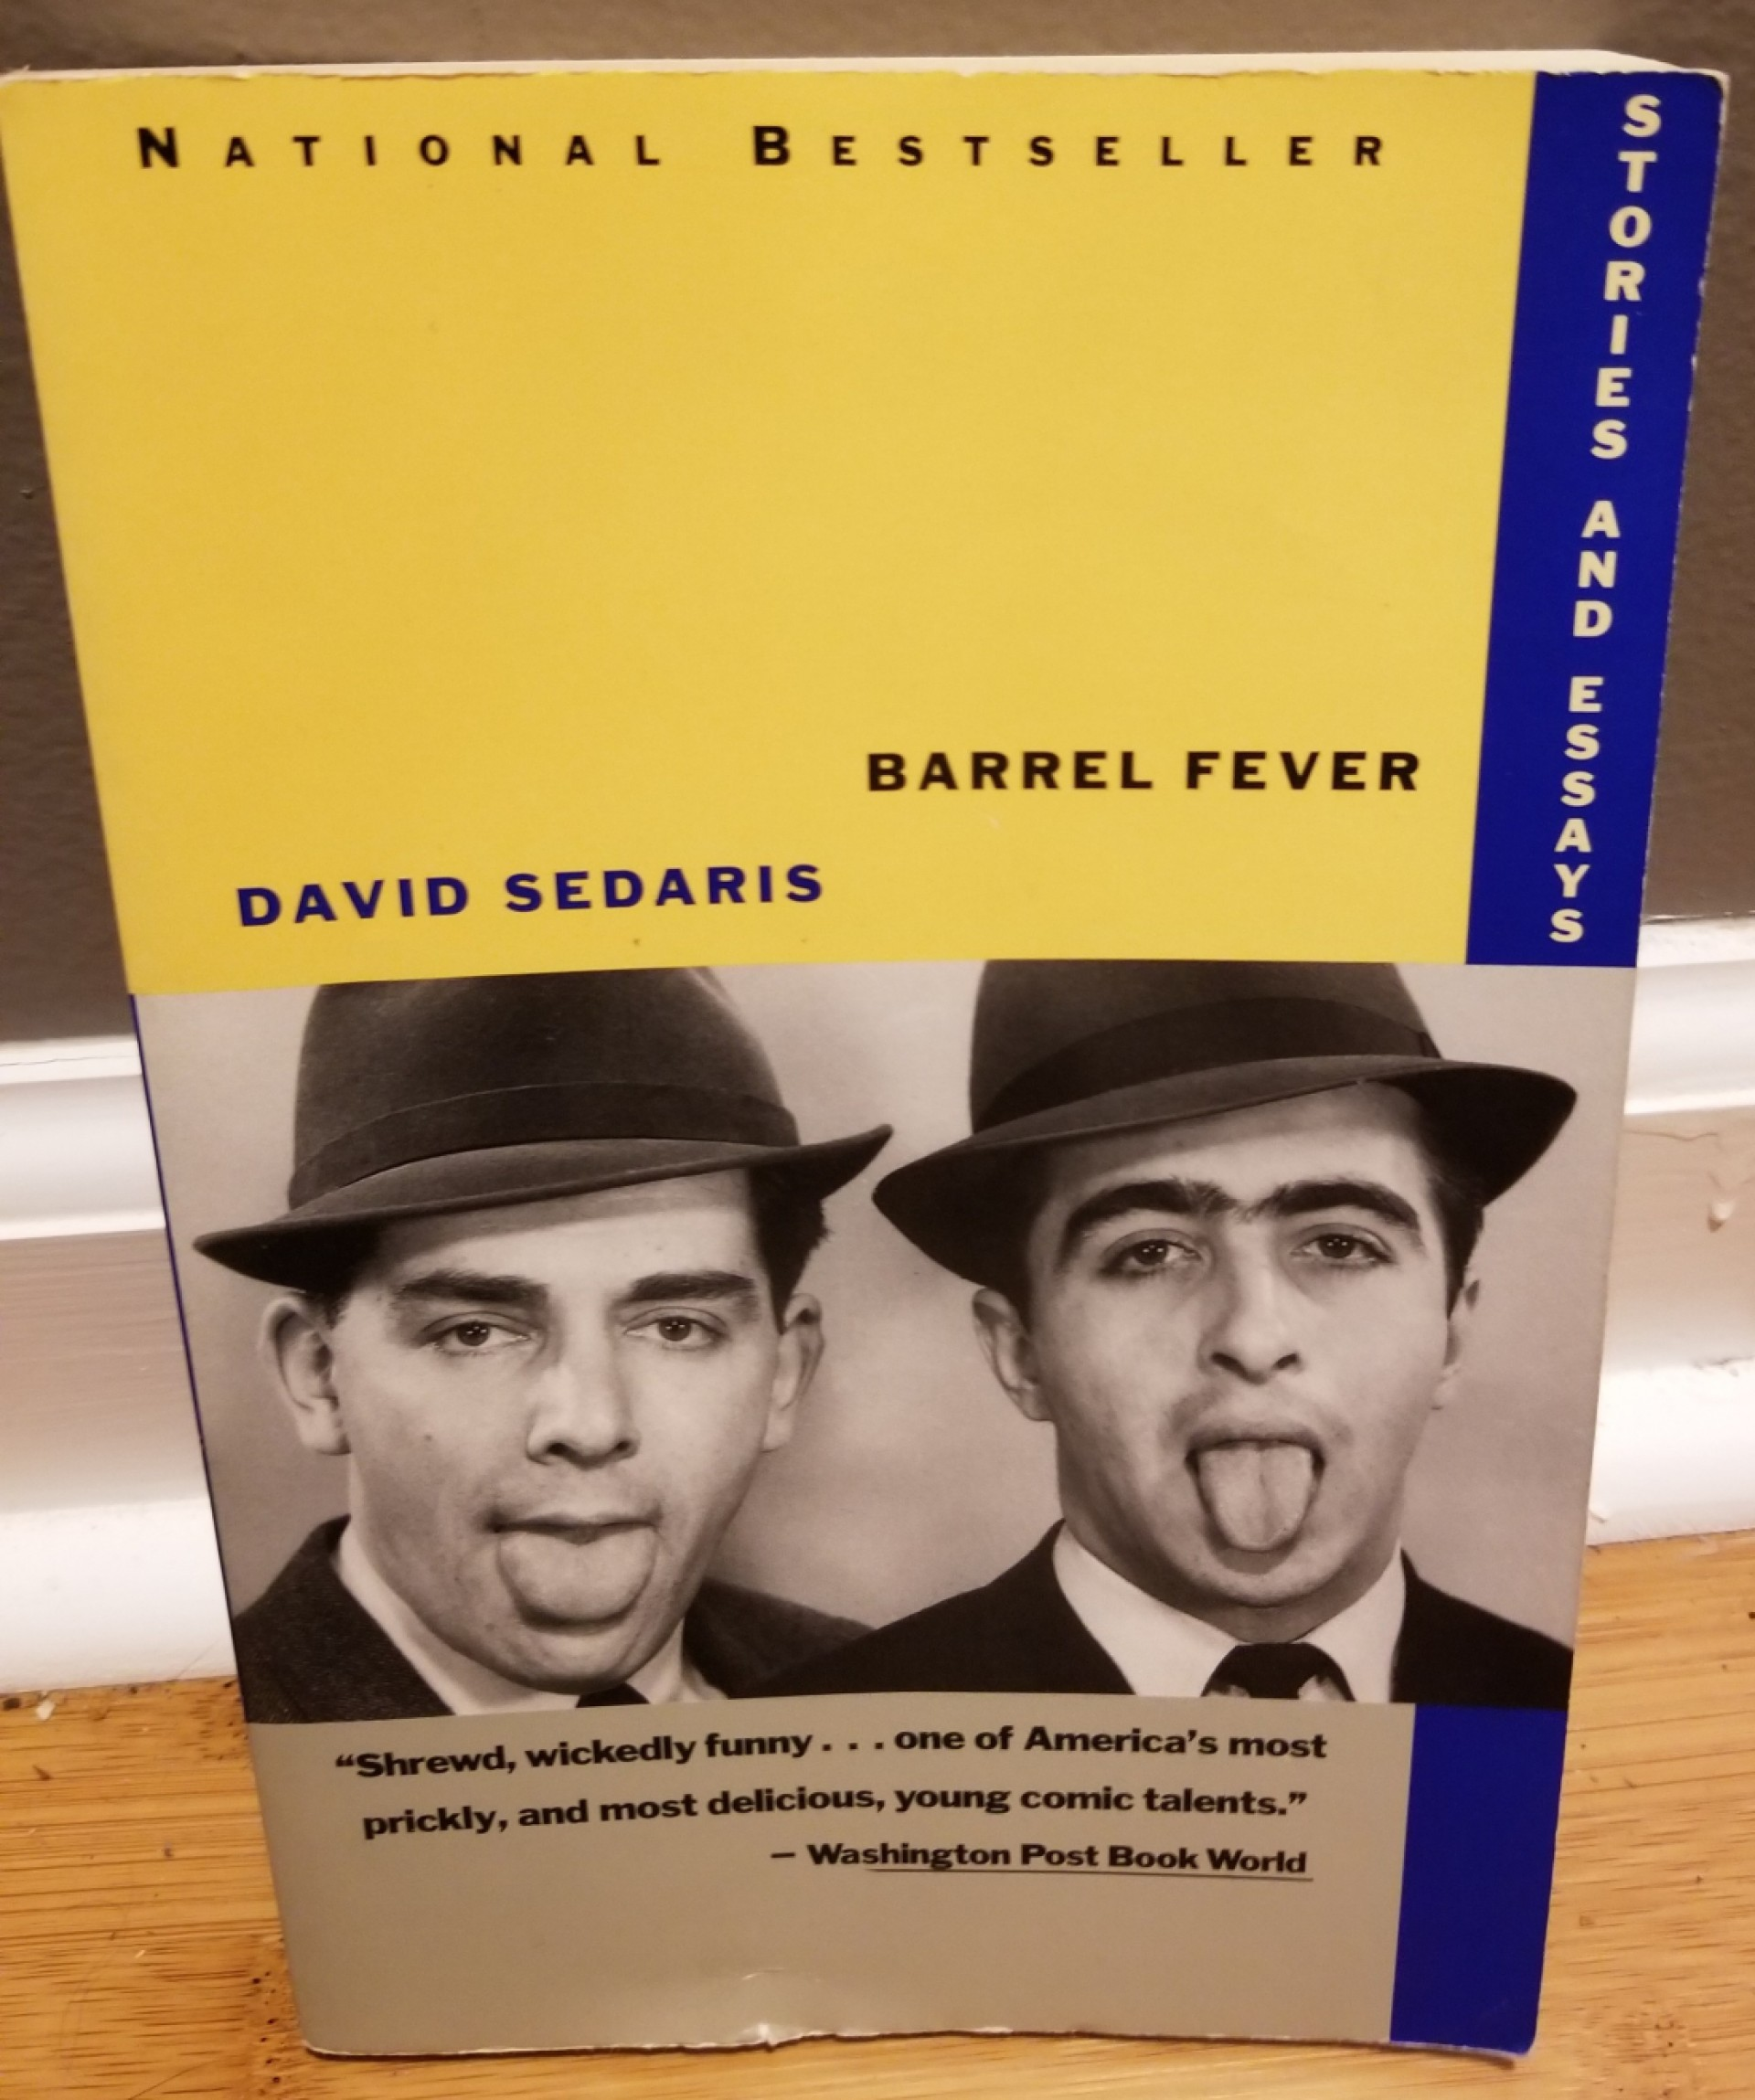 007 Essay Example 20180806 183325 E1533595075744w1100 David Sedaris Fascinating Essays New Yorker Calypso 1920